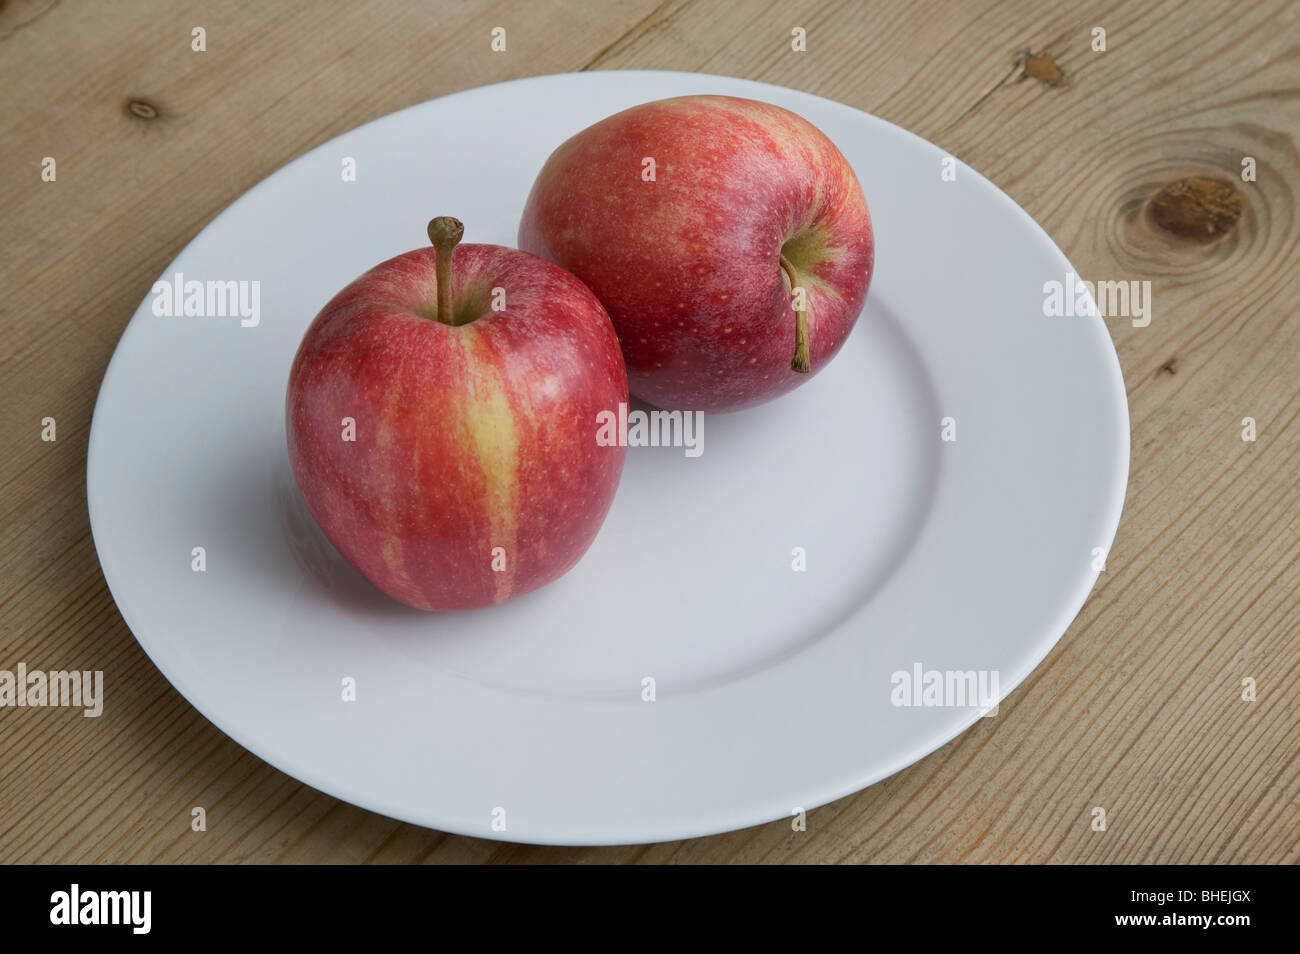 RED EATING APPLES ON WHITE PLATE ON WOODEN TABLE. - Stock Image